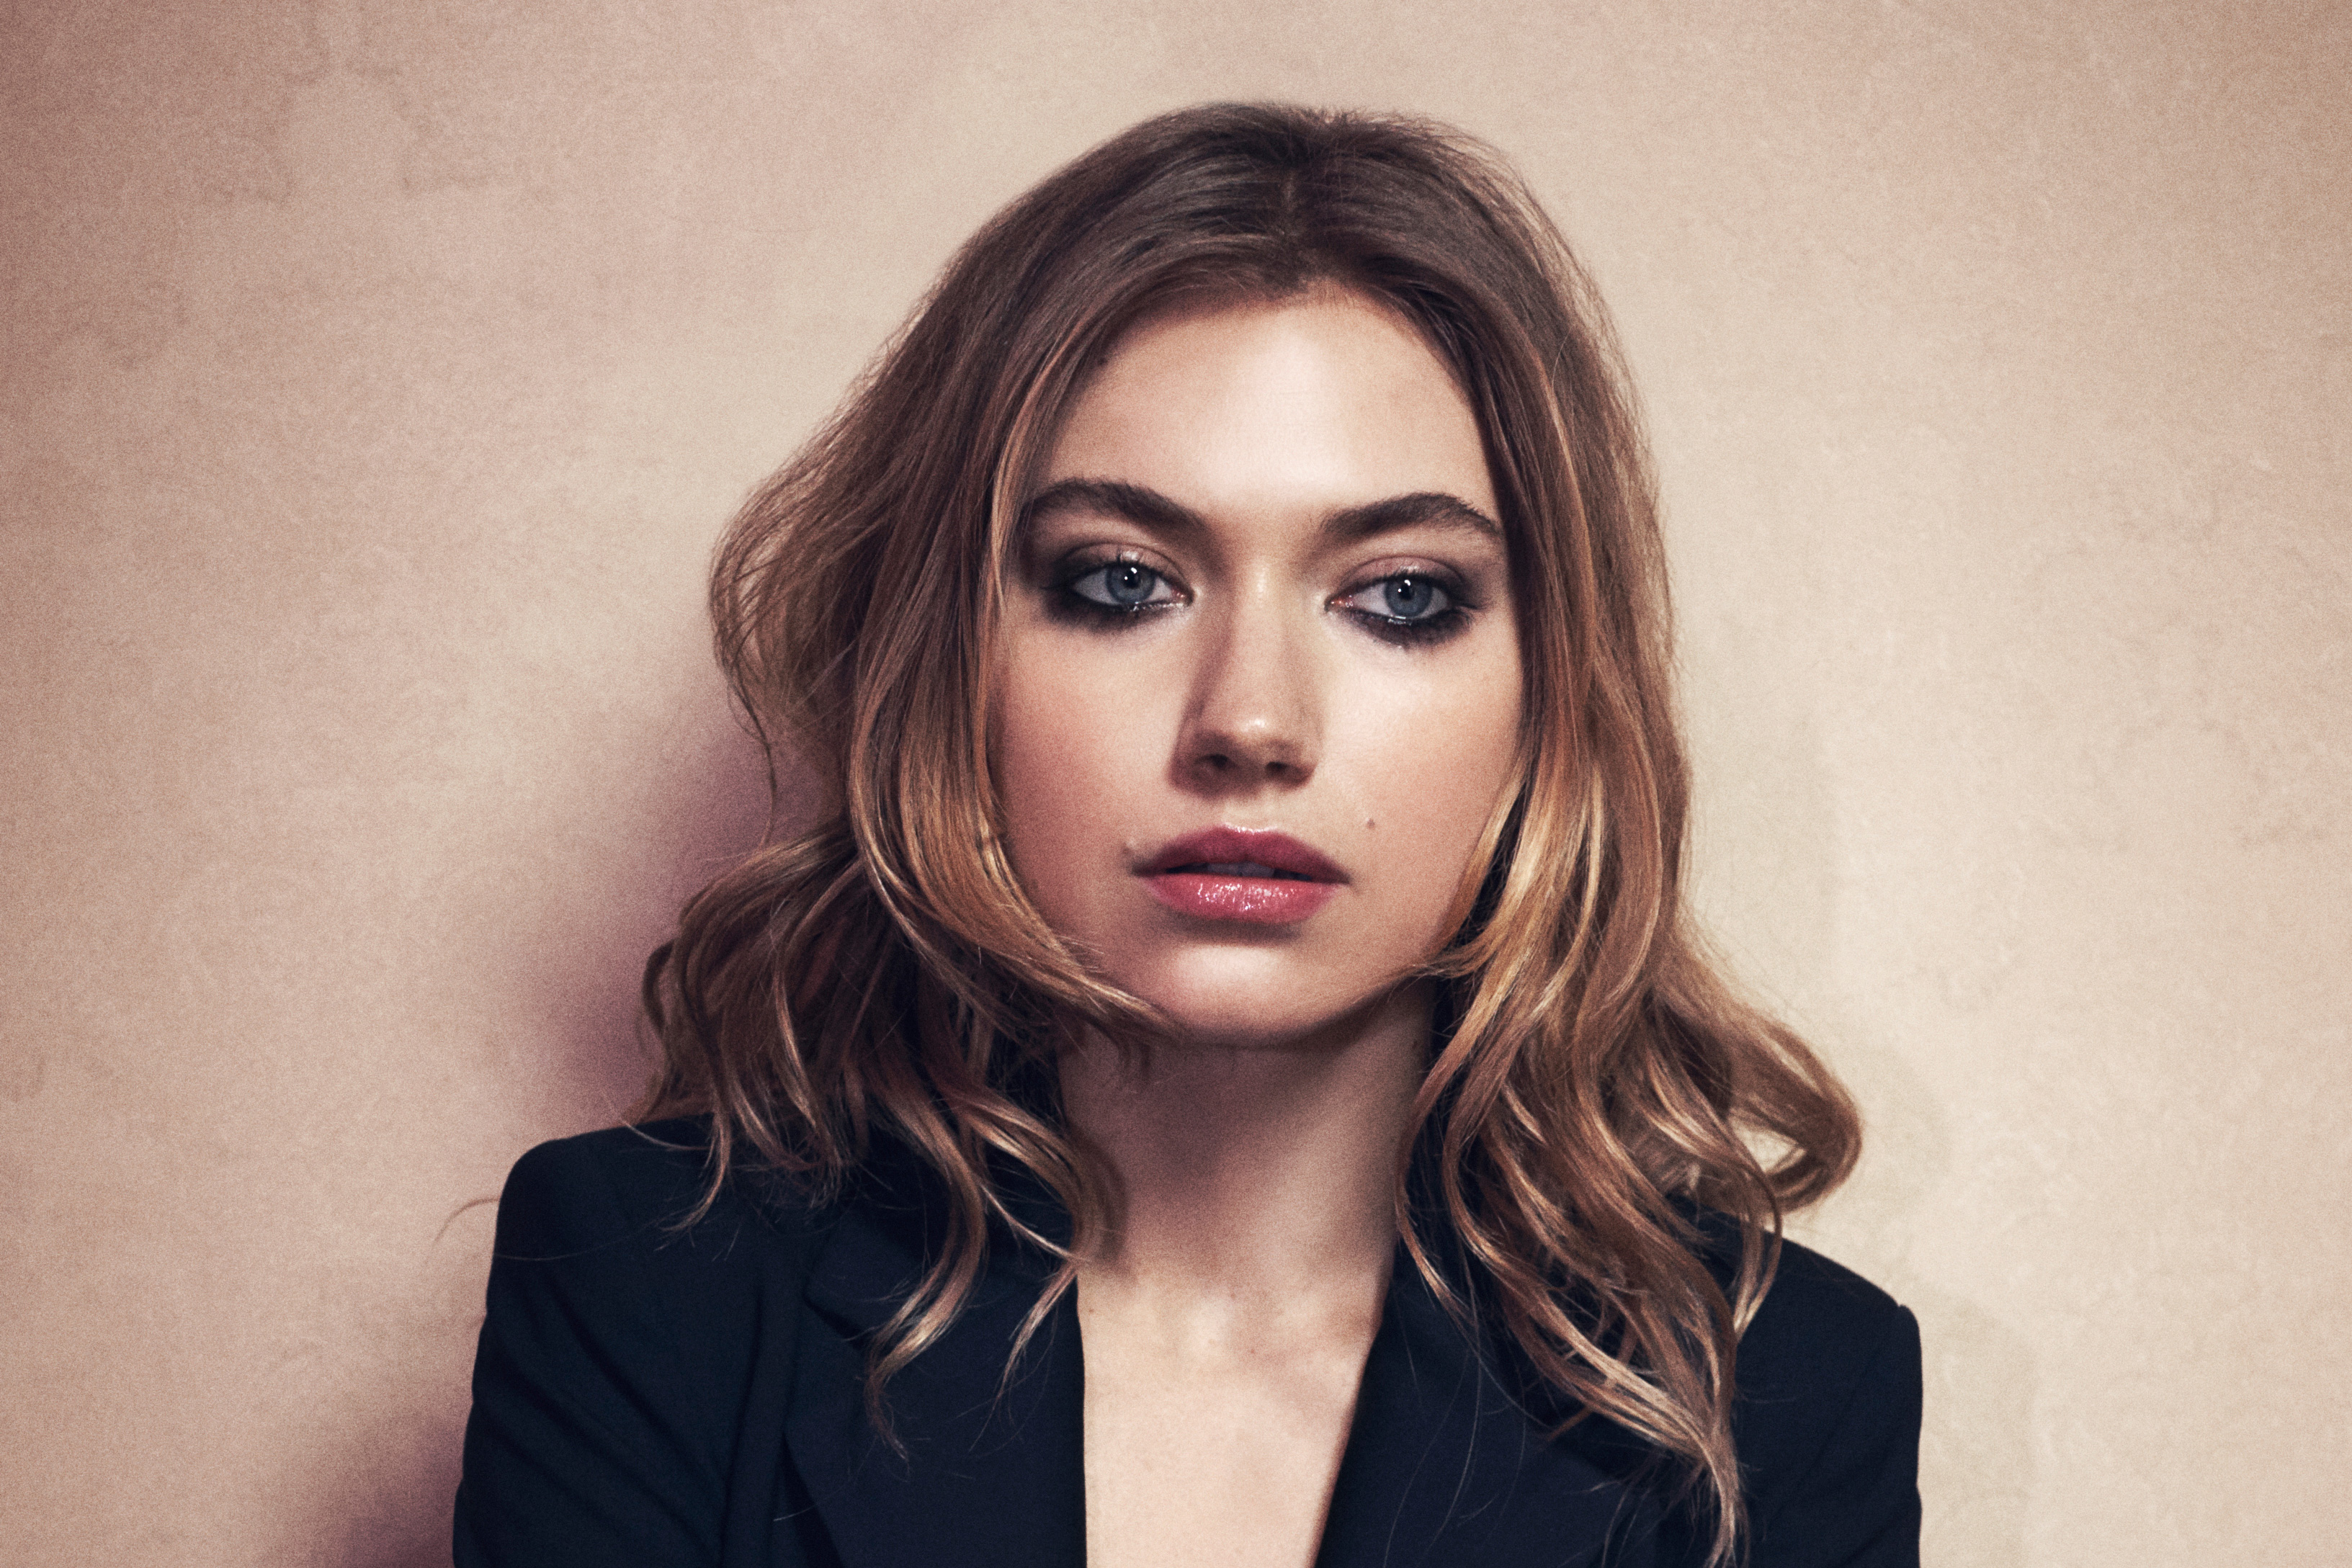 Imogen Poots 4k Hd Celebrities 4k Wallpapers Images Backgrounds